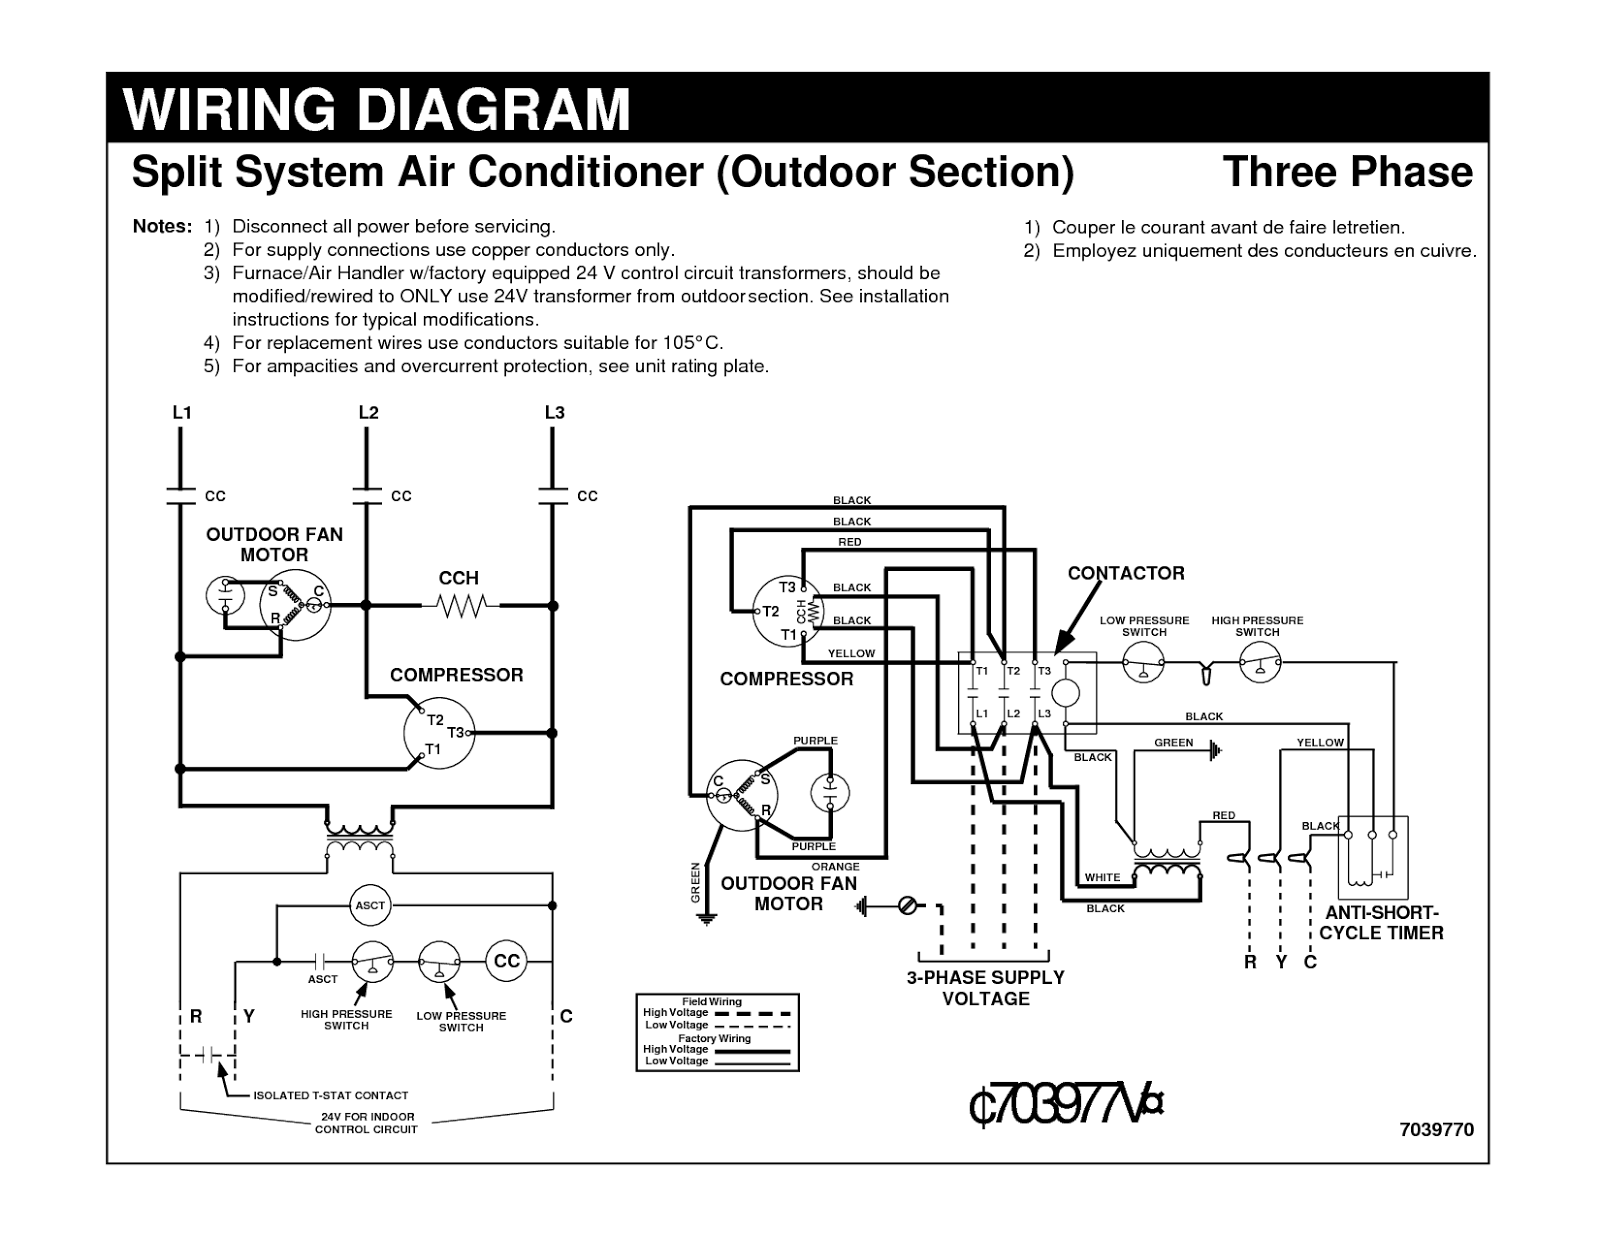 wiring+diagram+in+the+user+manual hvac wiring diagram pdf hvac definitions pdf \u2022 free wiring electrical control wiring diagram pdf at readyjetset.co